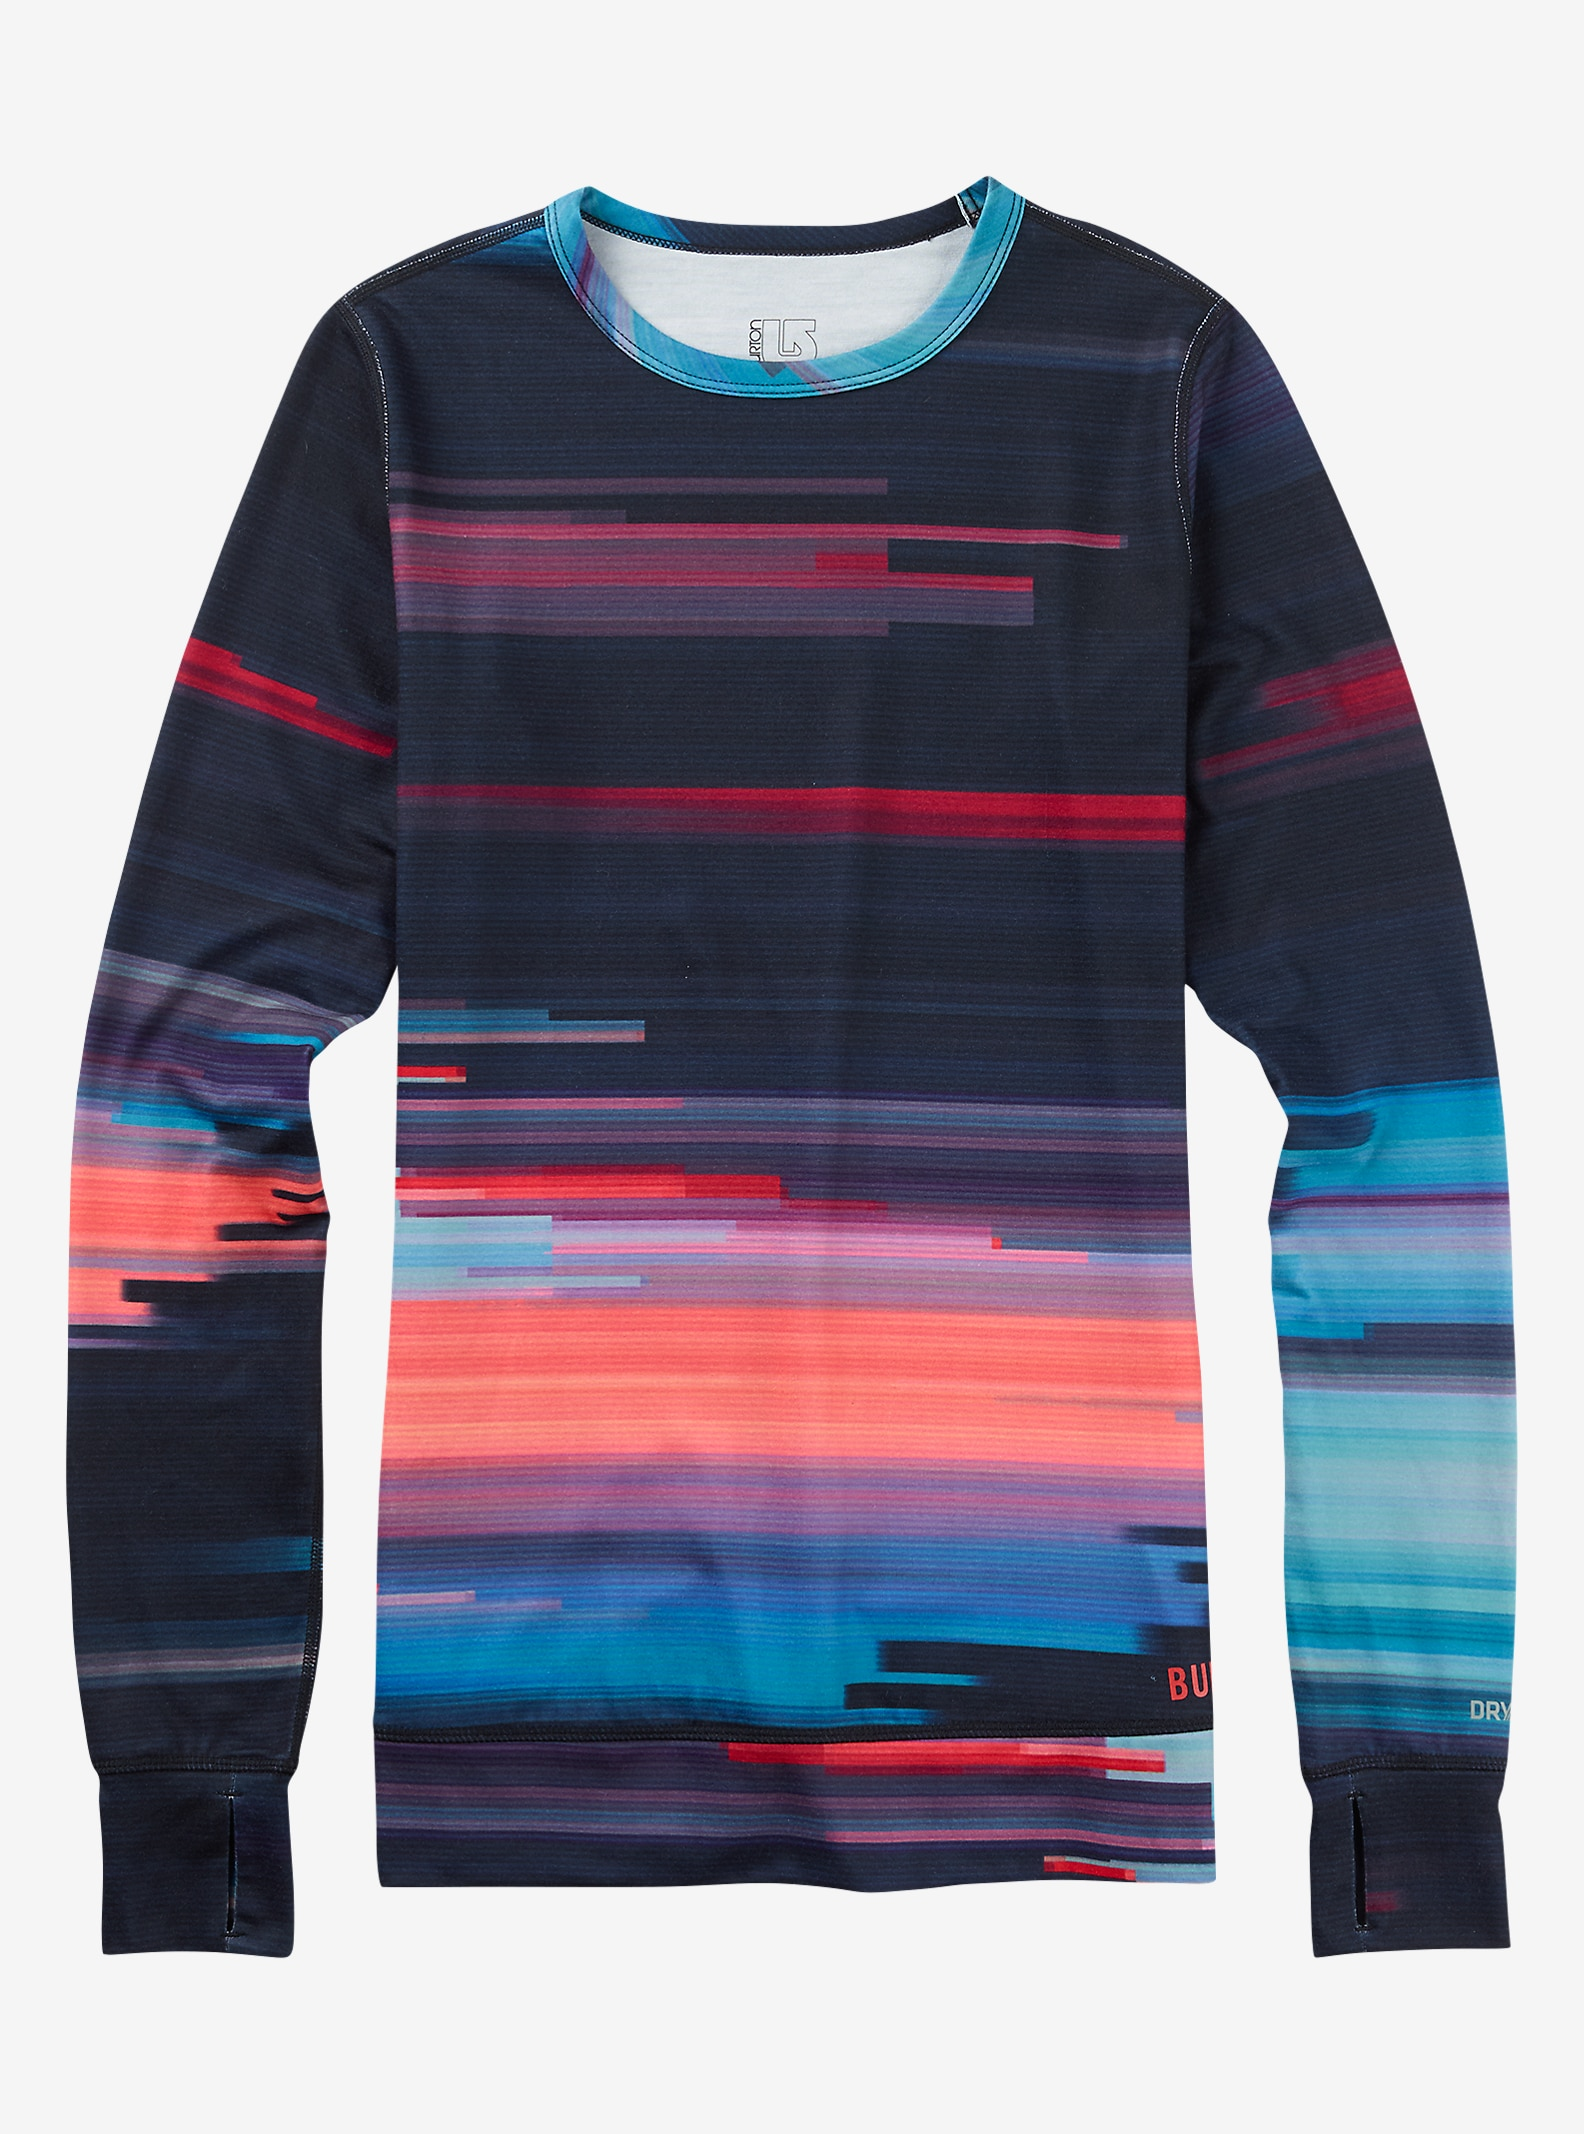 Burton Women's Base Layer Midweight Crew shown in Coral Flynn Glitch